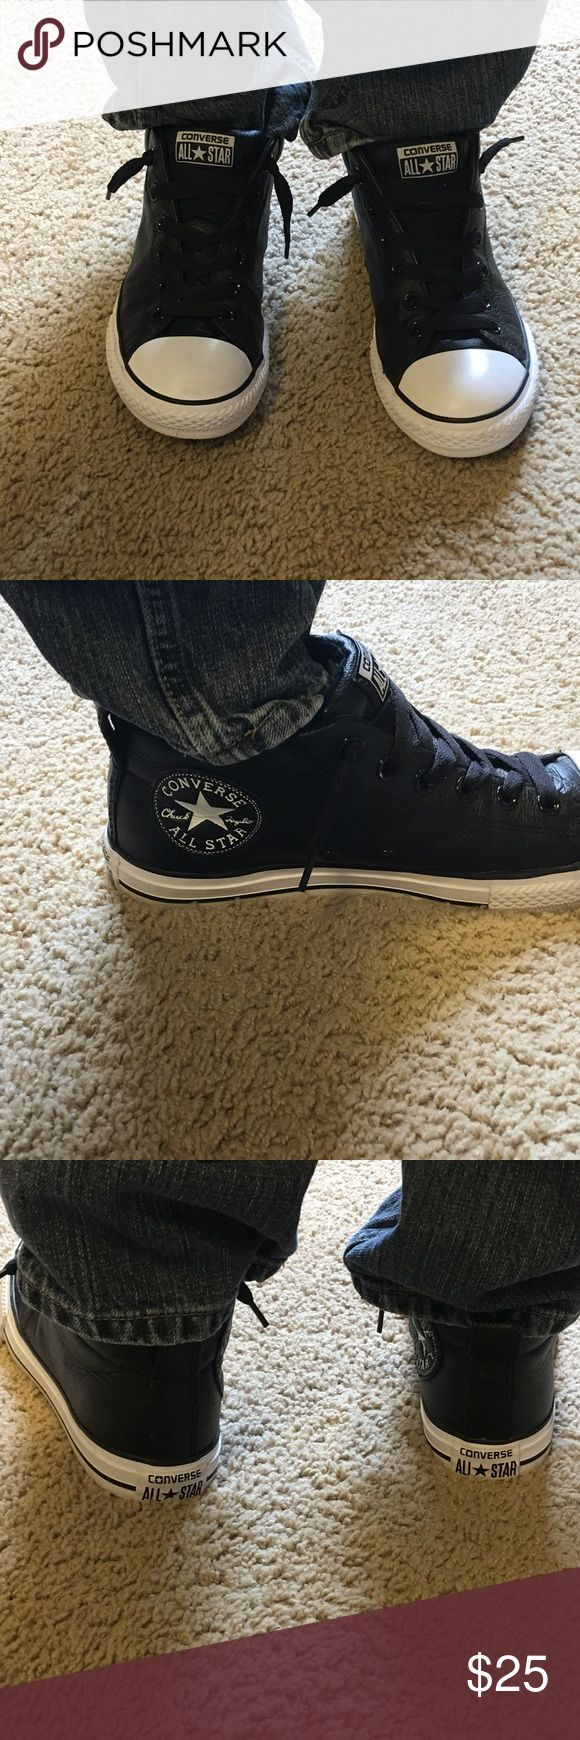 Boys Leather upper Converse 🌟DISCOUNT 🌟Boys size 5 leather upper Converse, these shoes are like new. Converse Shoes Sneakers